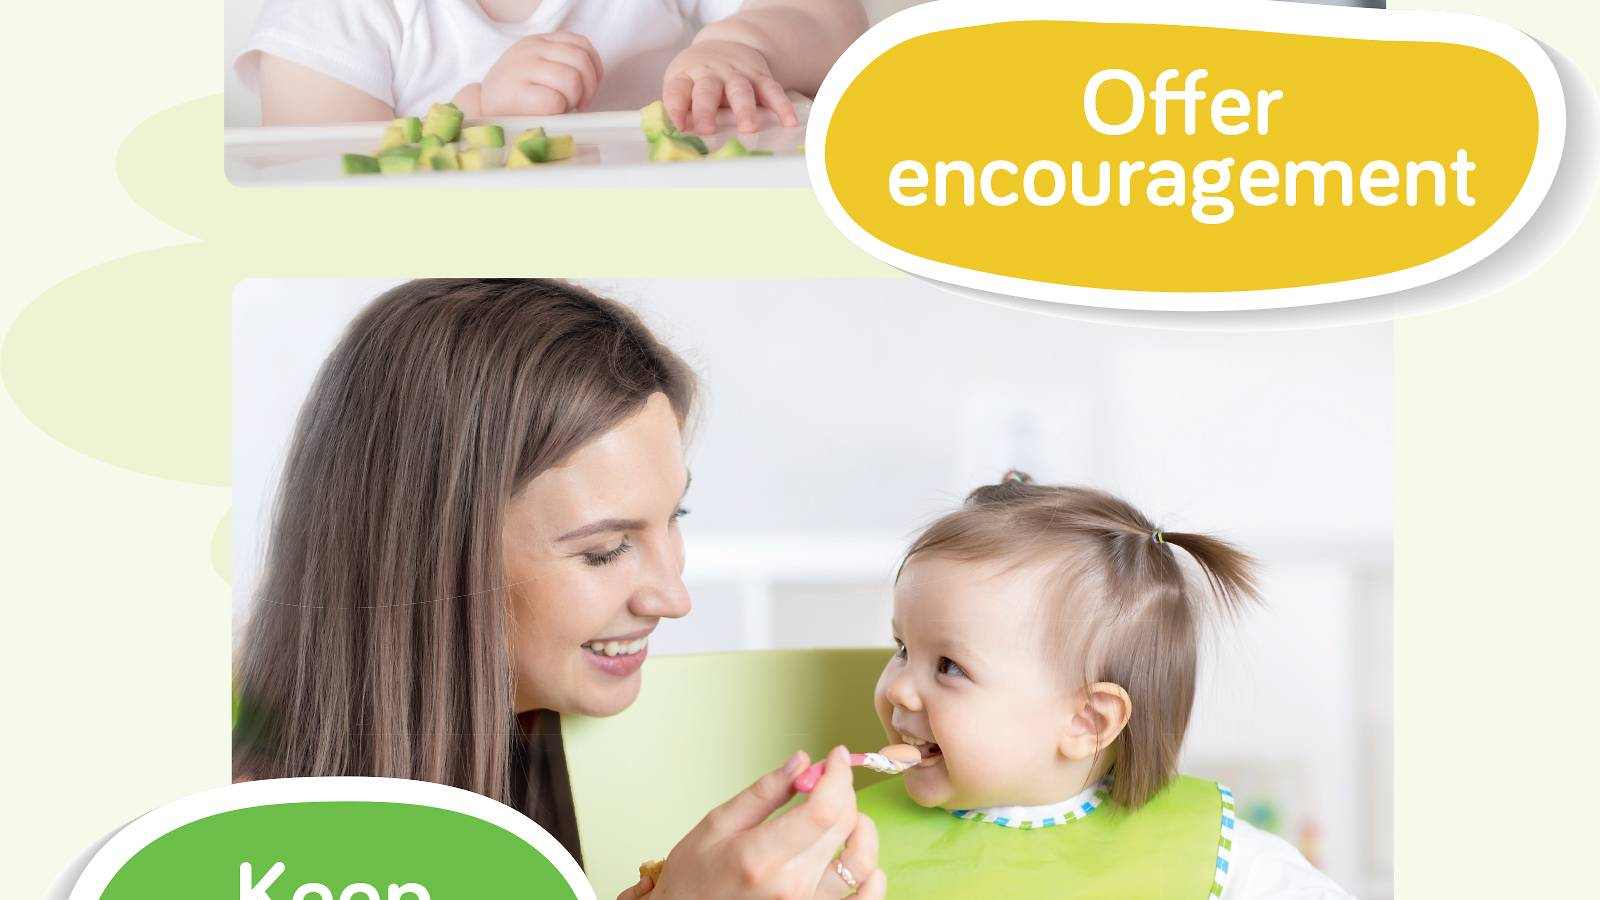 Babies-6-easy-tips-to-wean-baby-successfully-[Infographic]_04